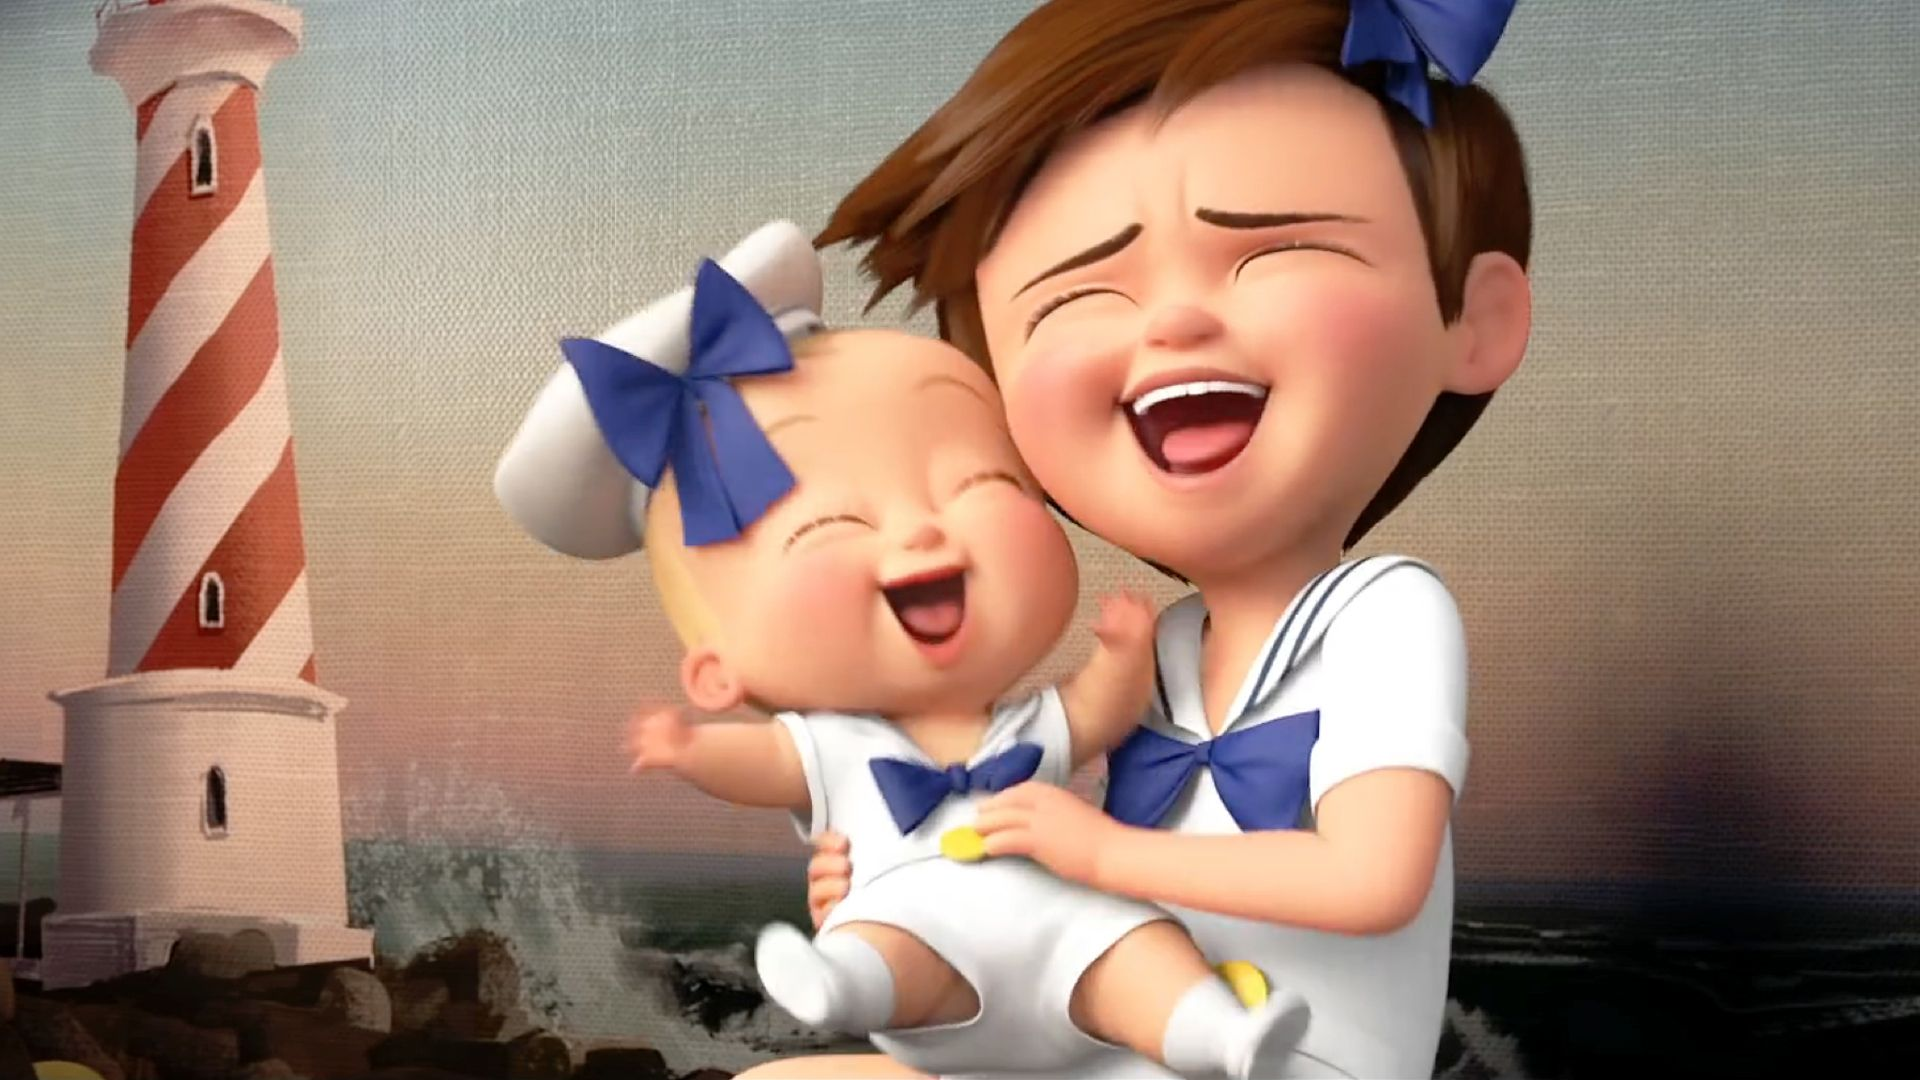 The boss baby hd wallpapers whb 5 thebossbabyhdwallpapers the boss baby hd wallpapers whb 5 thebossbabyhdwallpapers thebossbaby movies wallpapers voltagebd Image collections